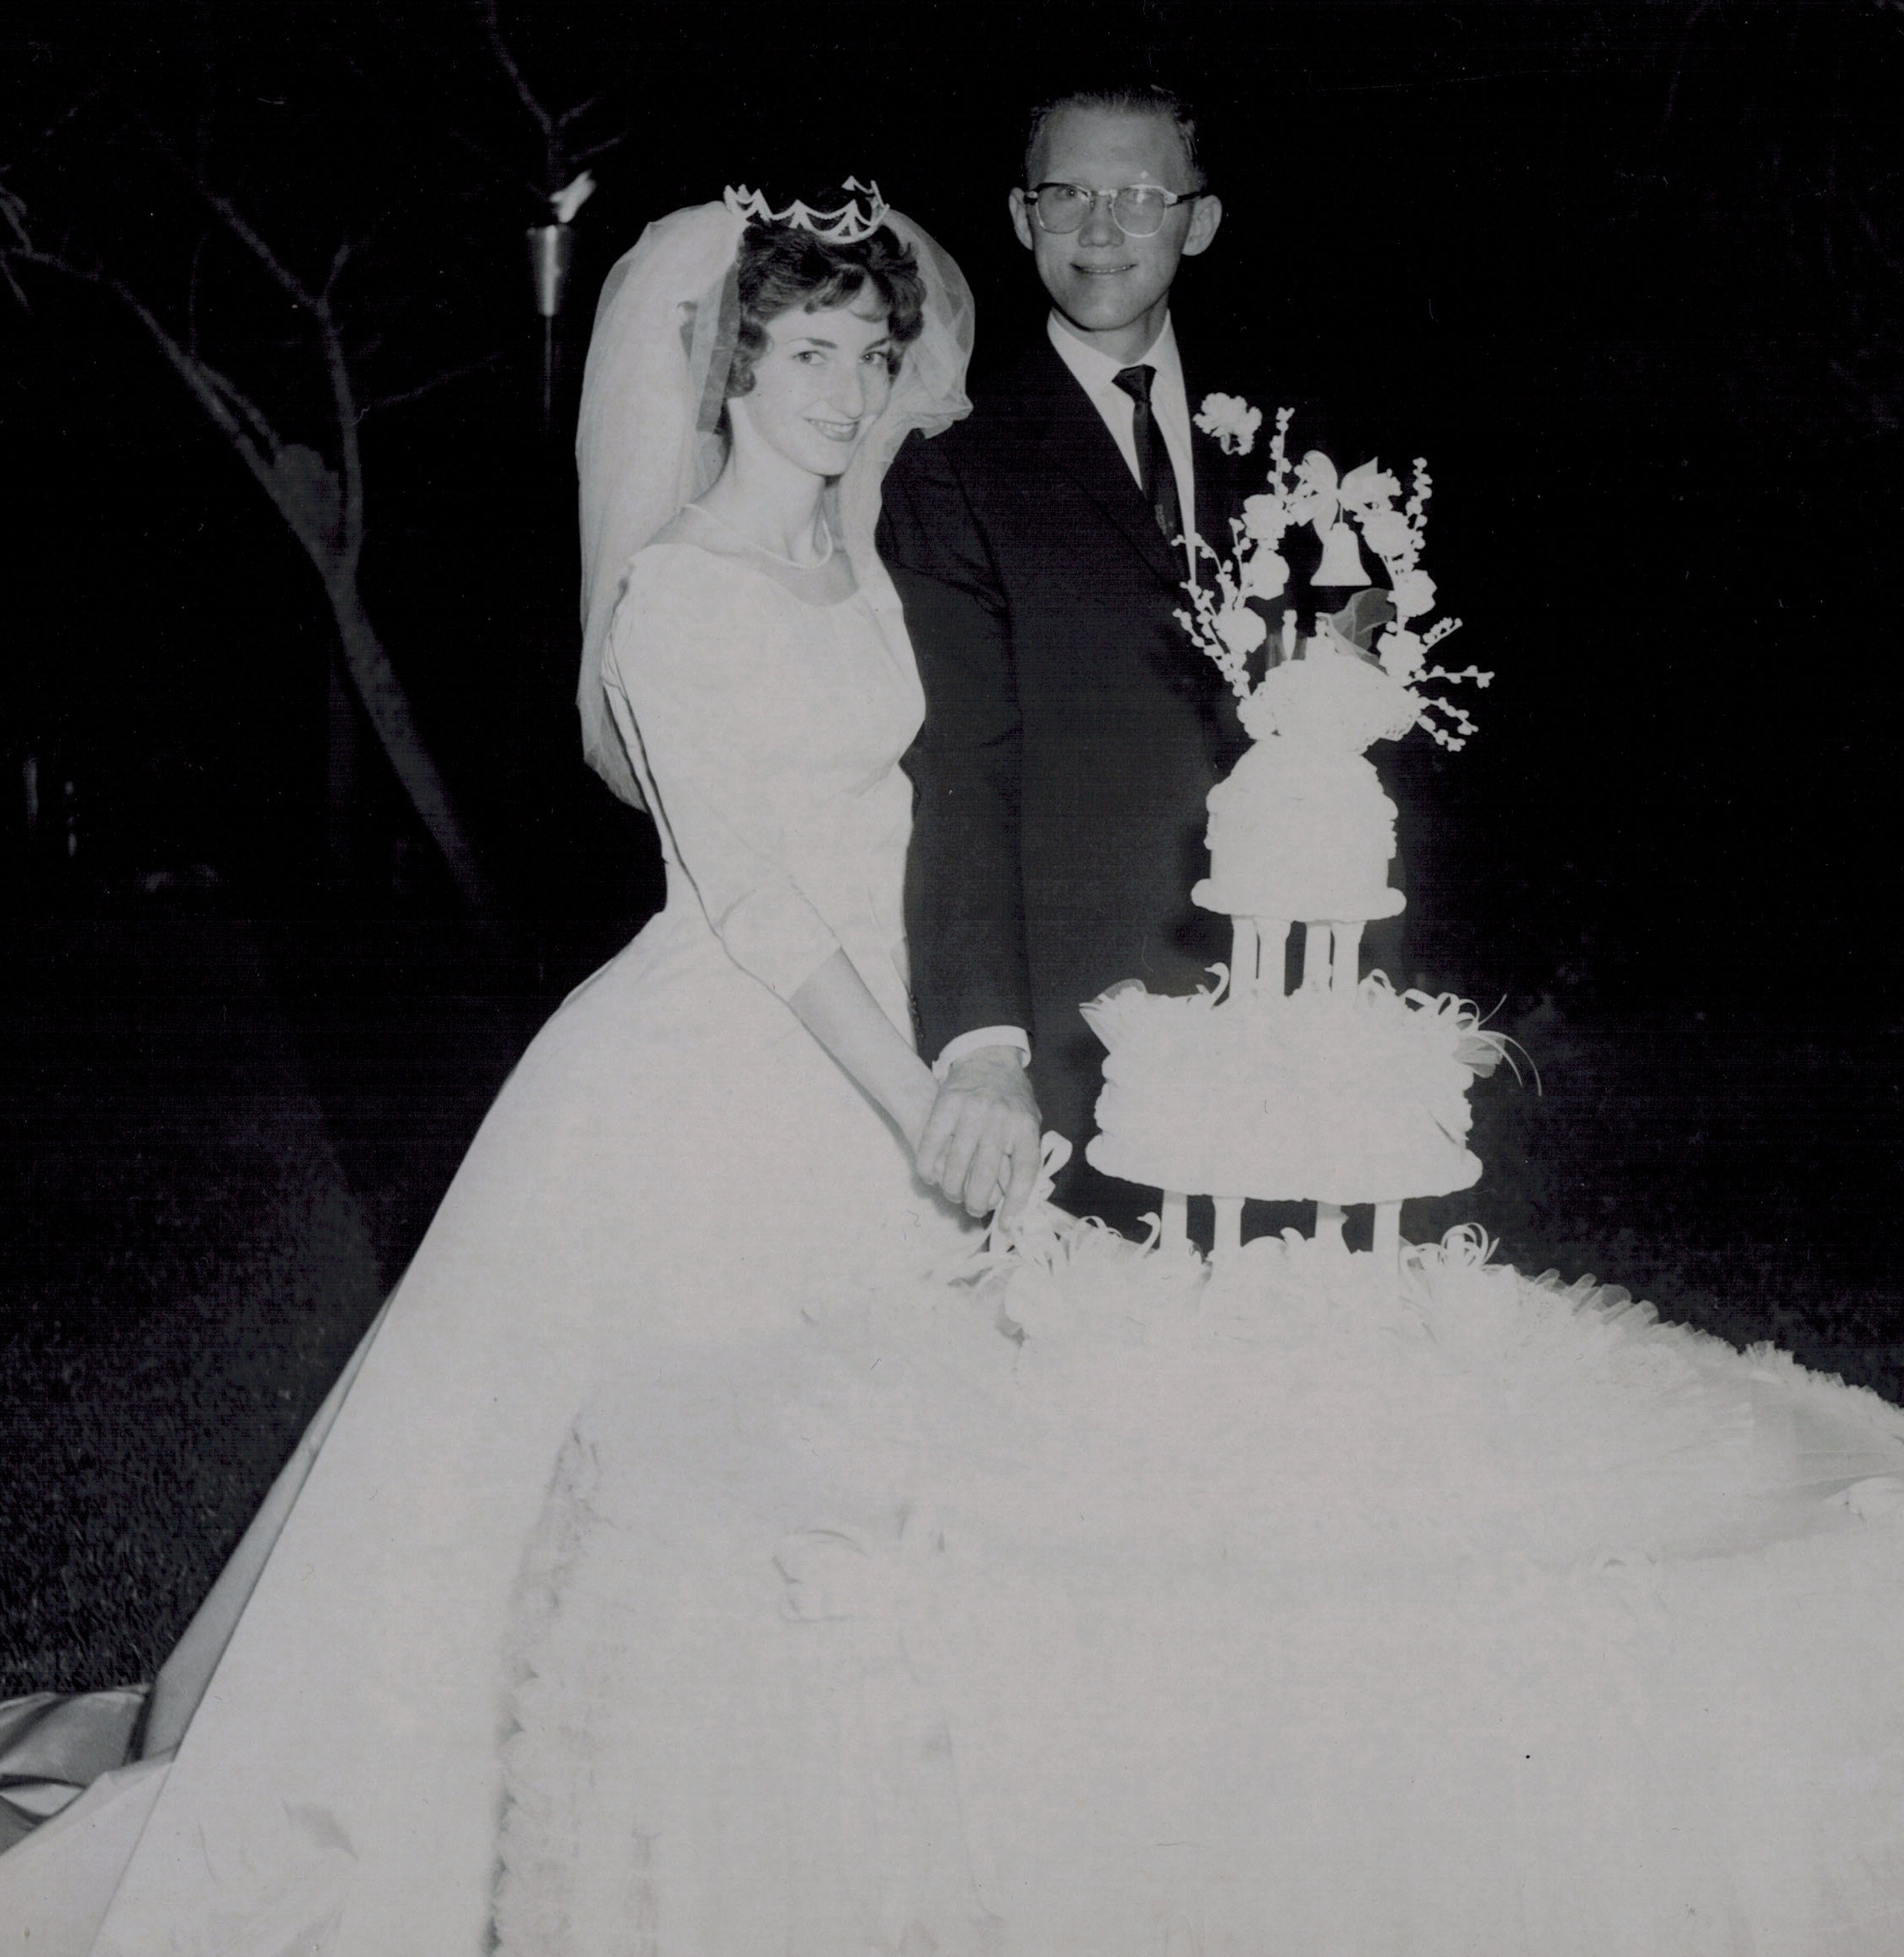 Steve and Sally Johnson on their wedding day, June 8, 1963.